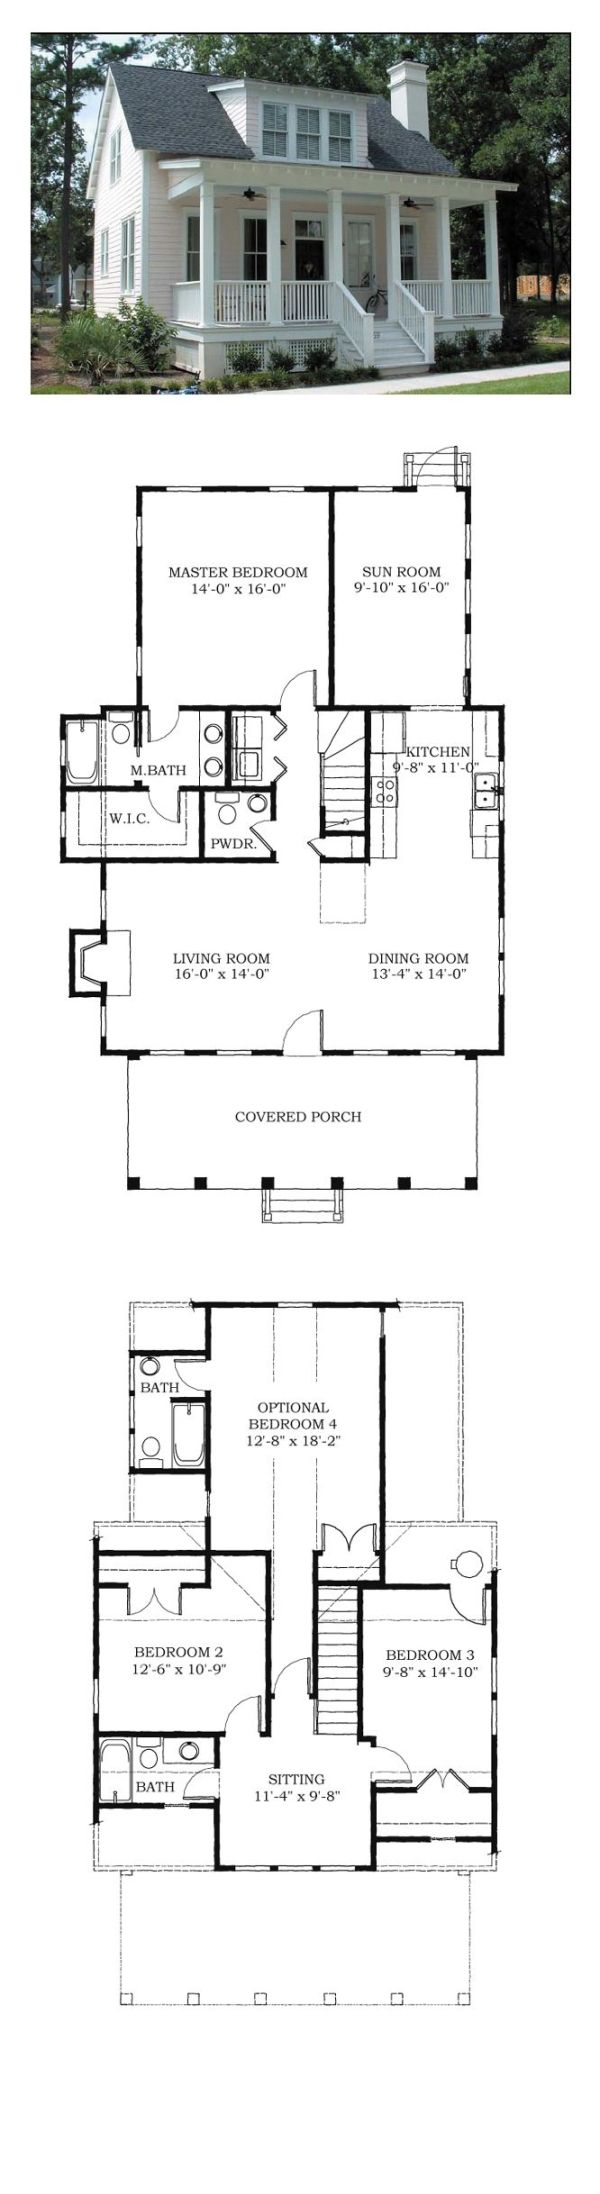 Teaching Kitchen Floor Plan 916 Best Floor Plans Images On Pinterest  House Floor Plans